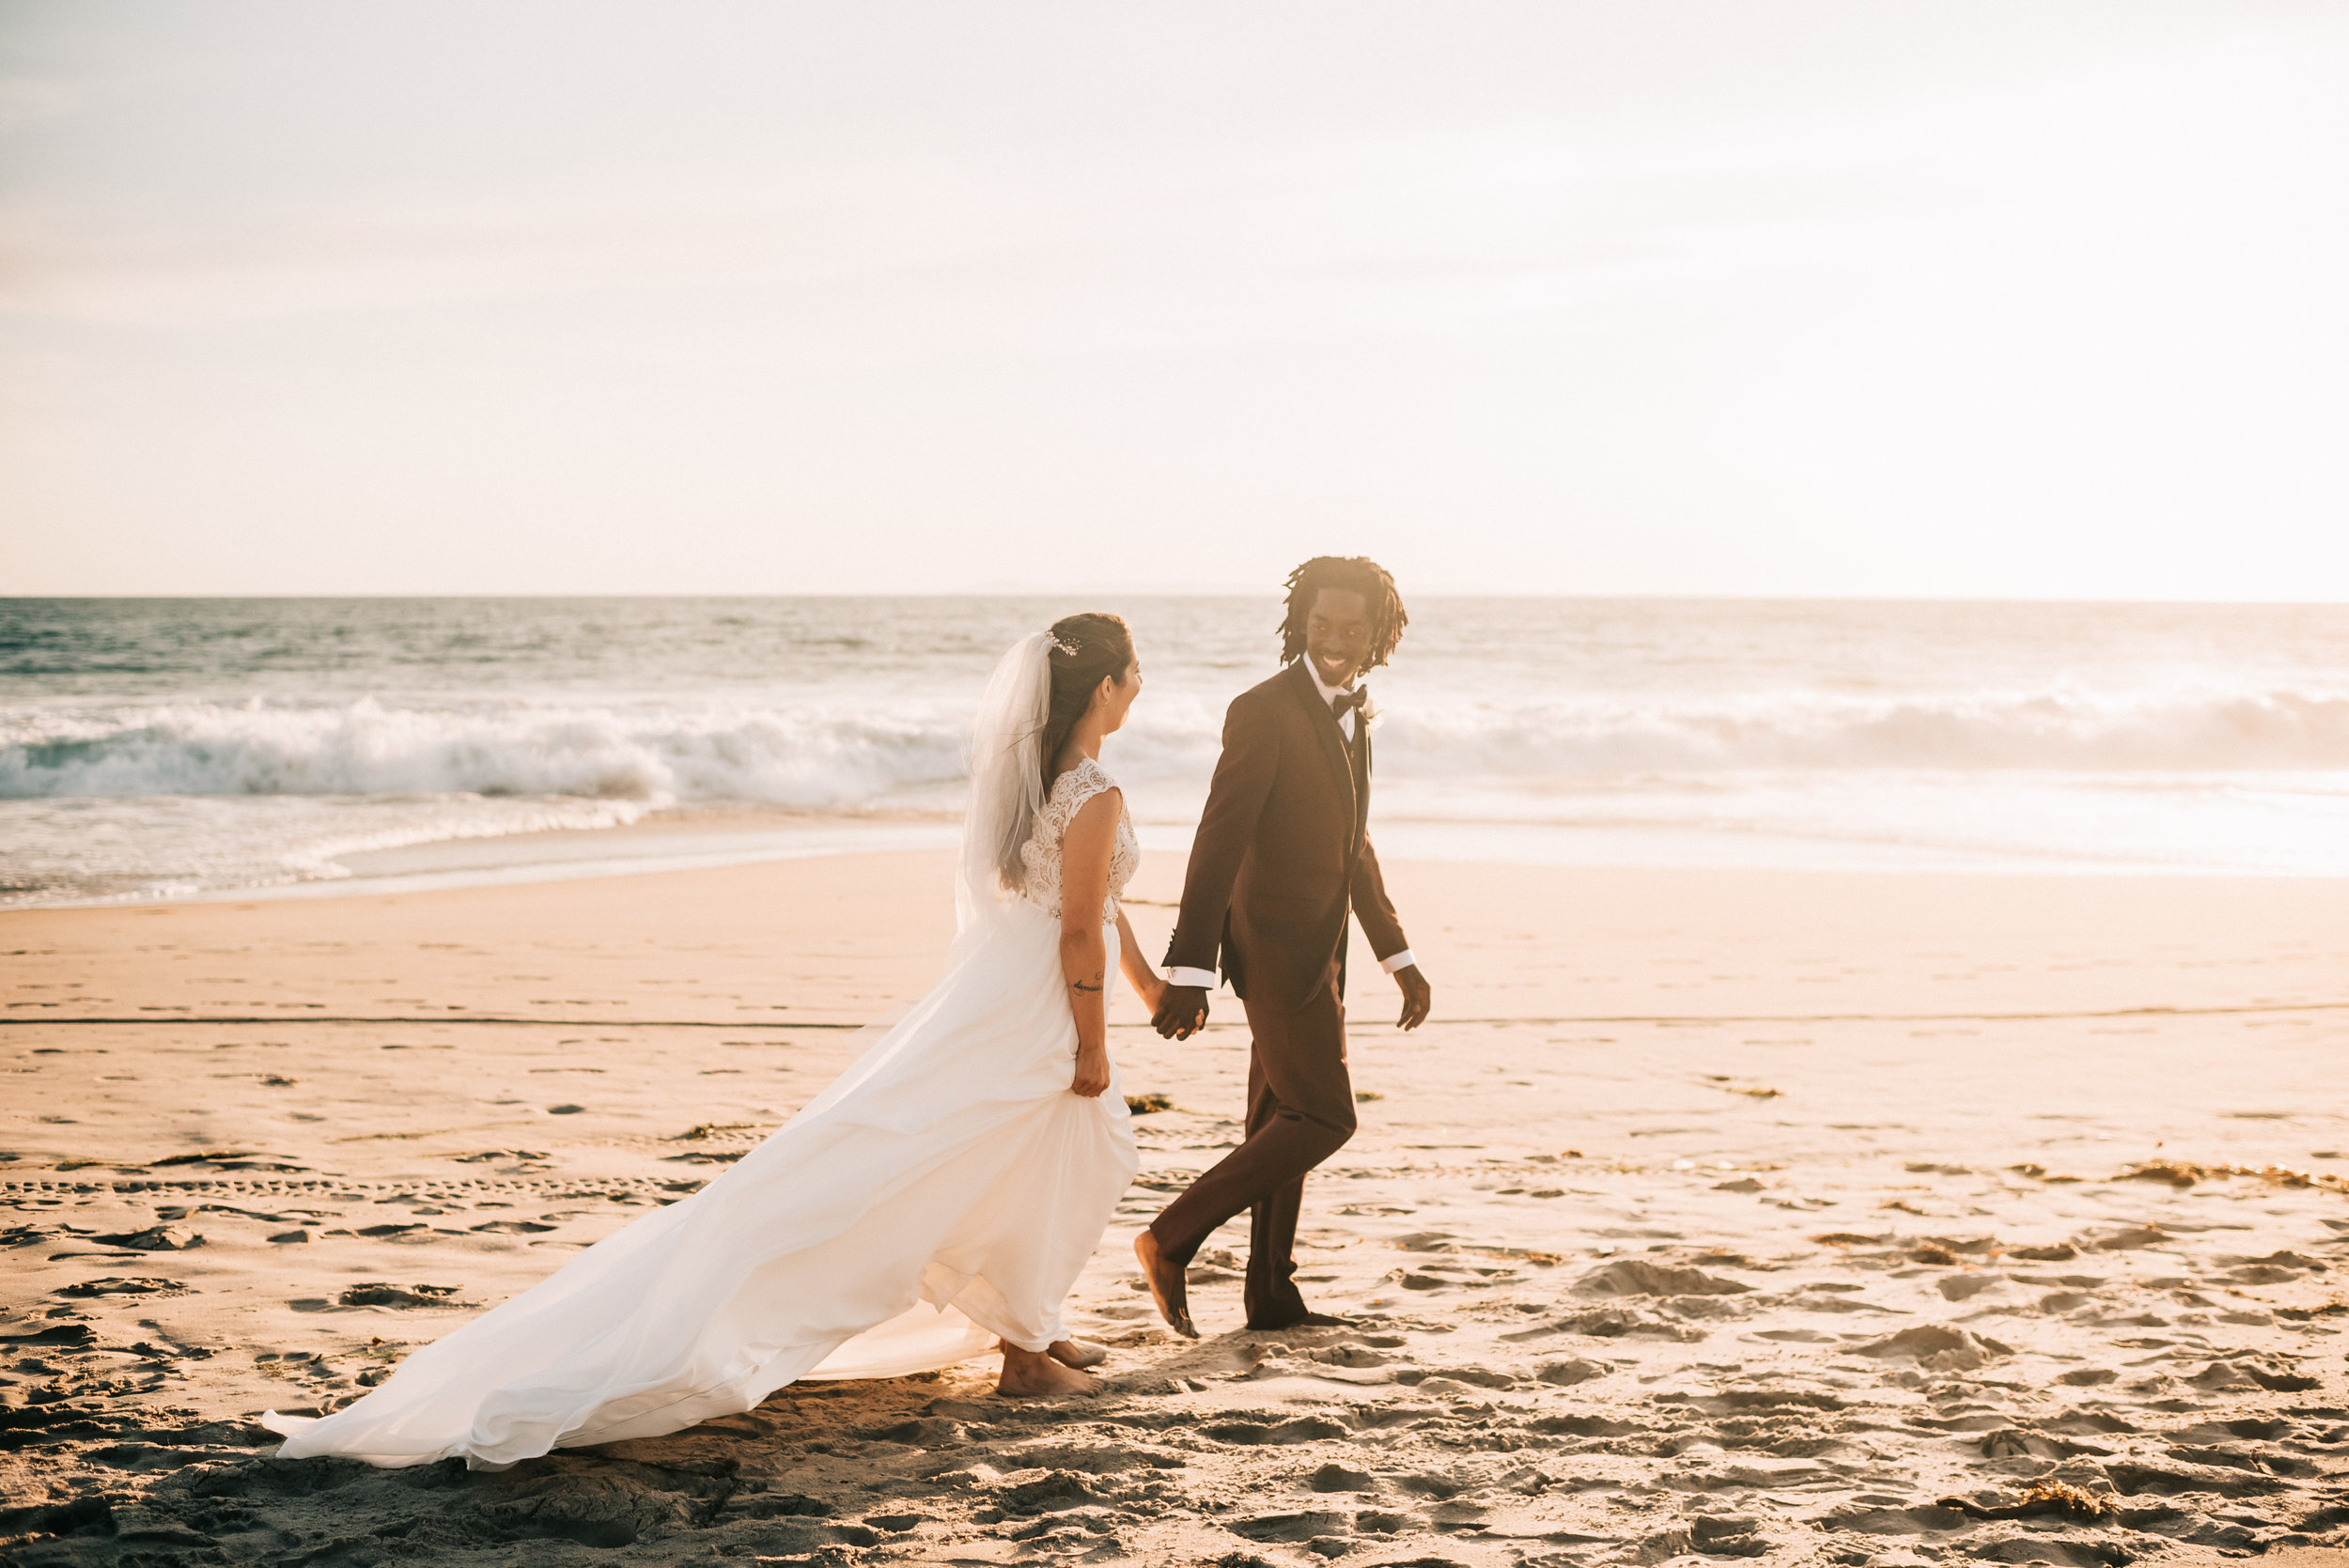 southern california laguna beach salt creek beach los angeles socal boho bay area akland san francisco engagement wedding nontraditional fun creative eclectic photographer magic-904.jpg